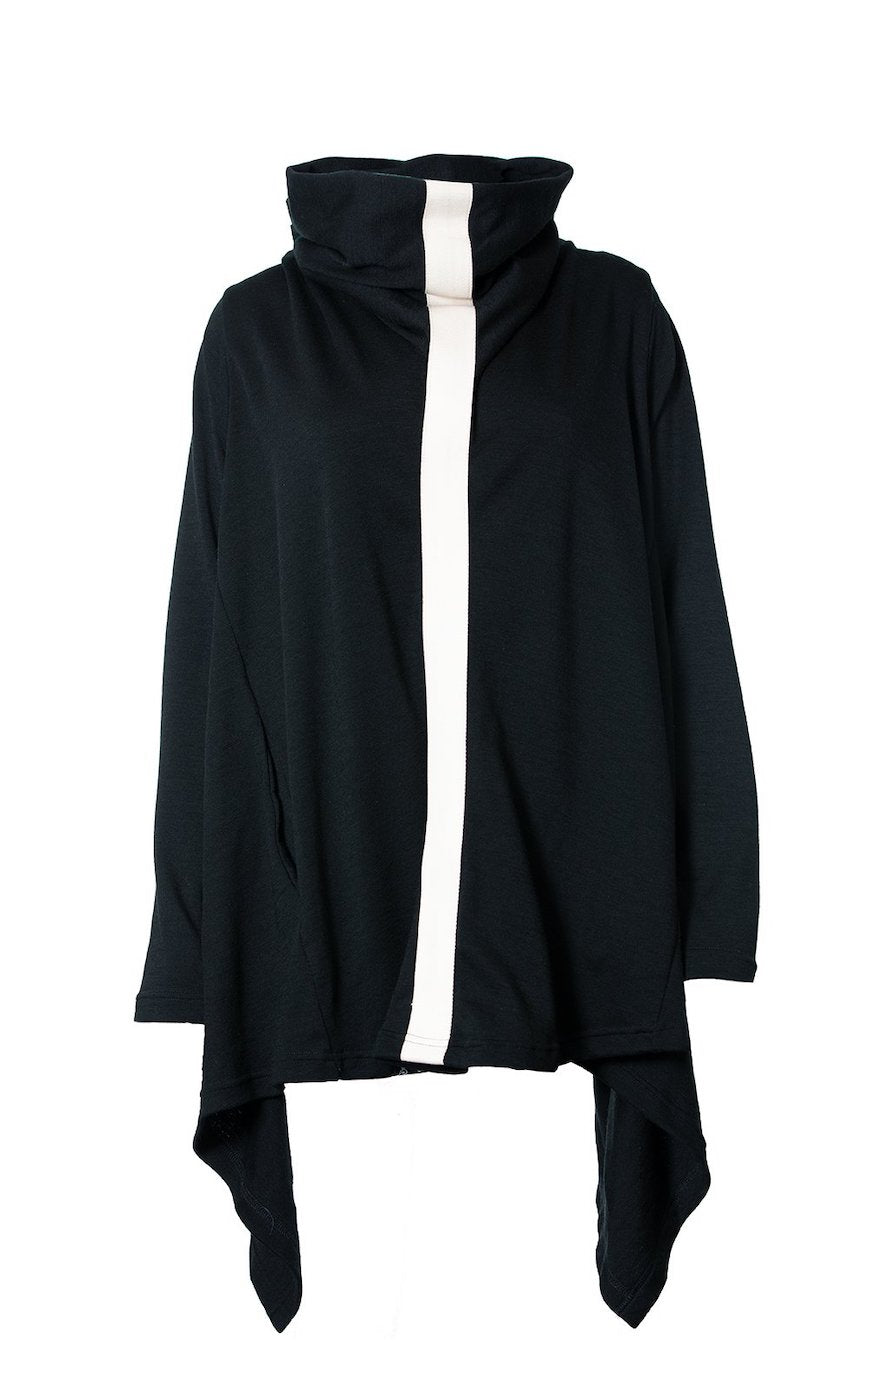 Poncho | Black & Ivory | True Fleece New Zealand